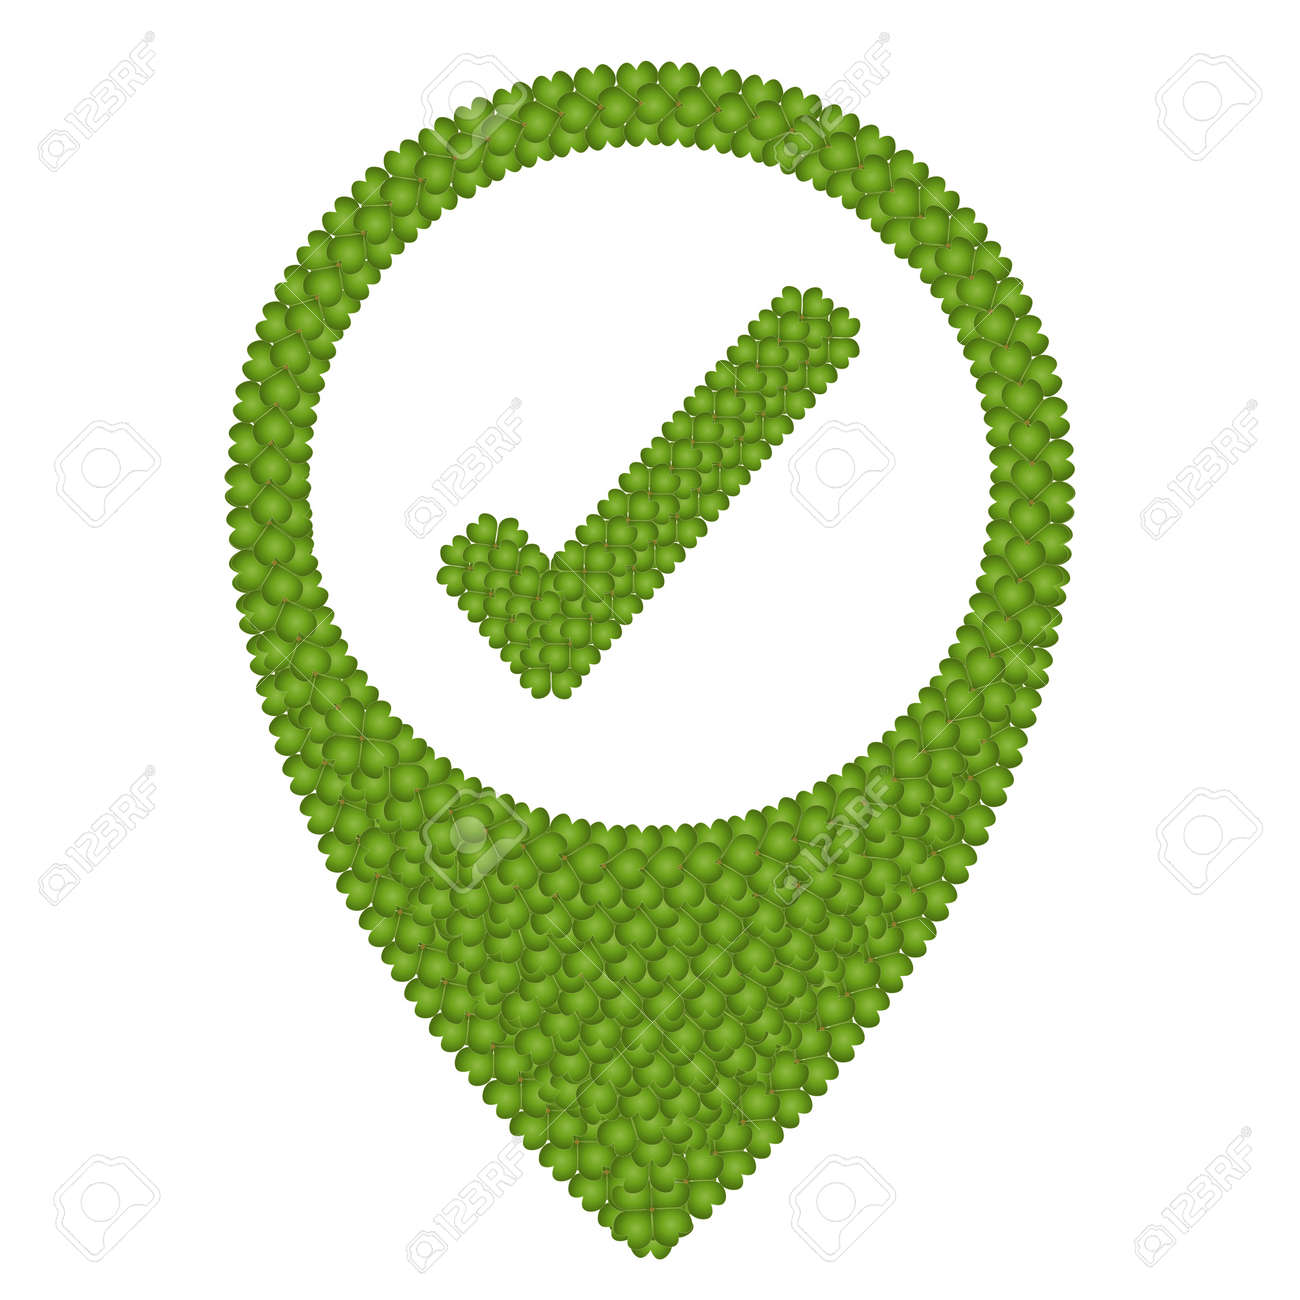 Ecology Concept, Fresh Green Four Leaf Clover Forming Map Pin Icon or Straight Pin and Check Mark Icon, Isolated on White Background Stock Photo - 17287376